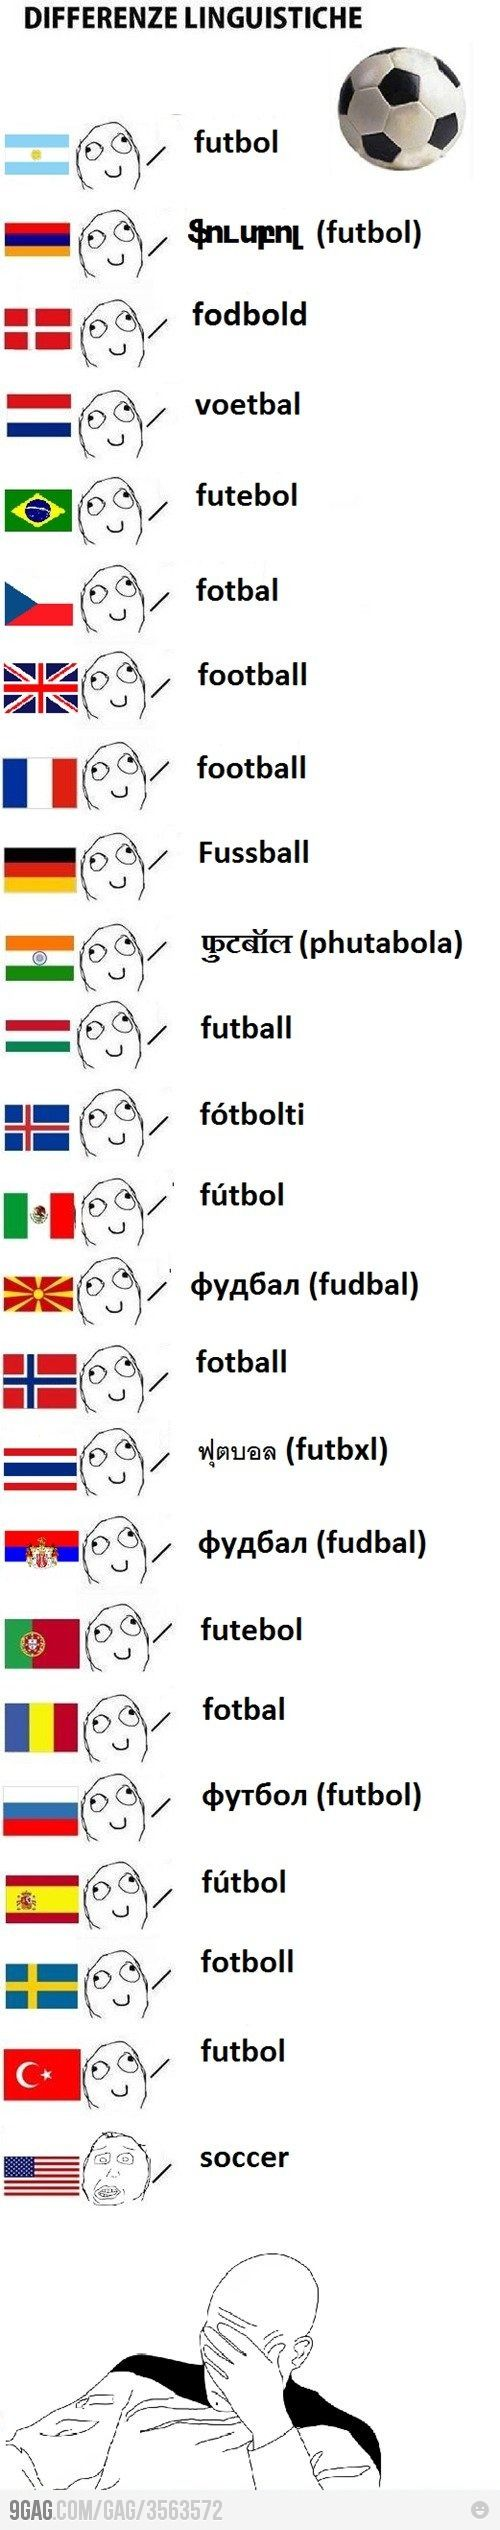 Football vs Soccer around the world